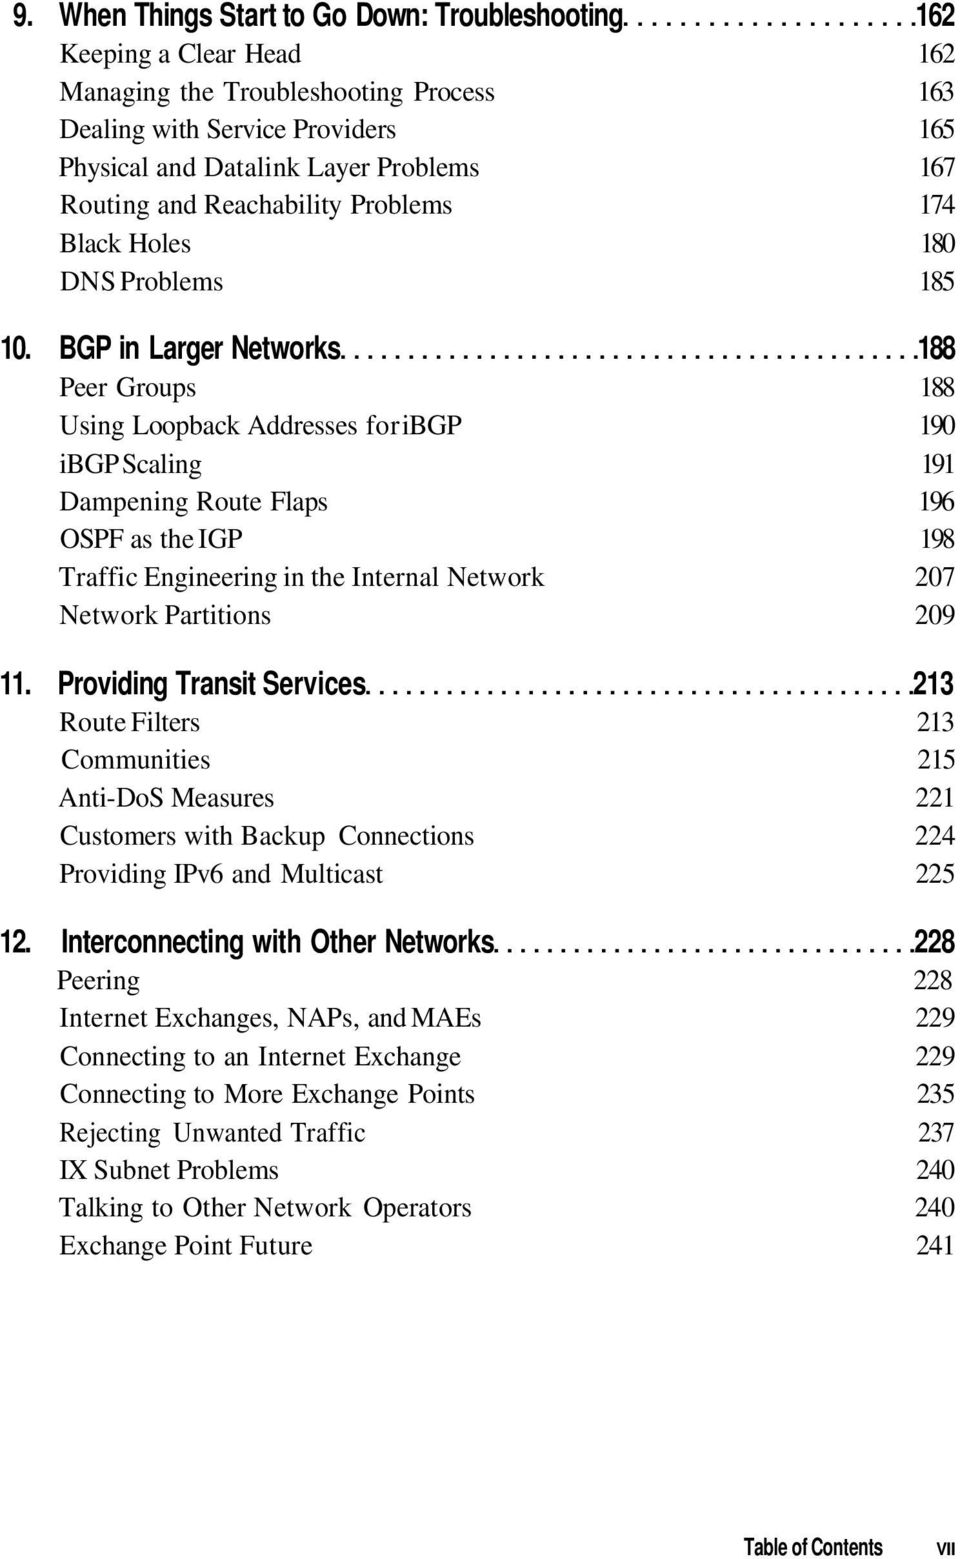 BGP in Larger Networks 188 Peer Groups 188 Using Loopback Addresses for ibgp 190 ibgp Scaling 191 Dampening Route Flaps 196 OSPF as the IGP 198 Traffic Engineering in the Internal Network 207 Network